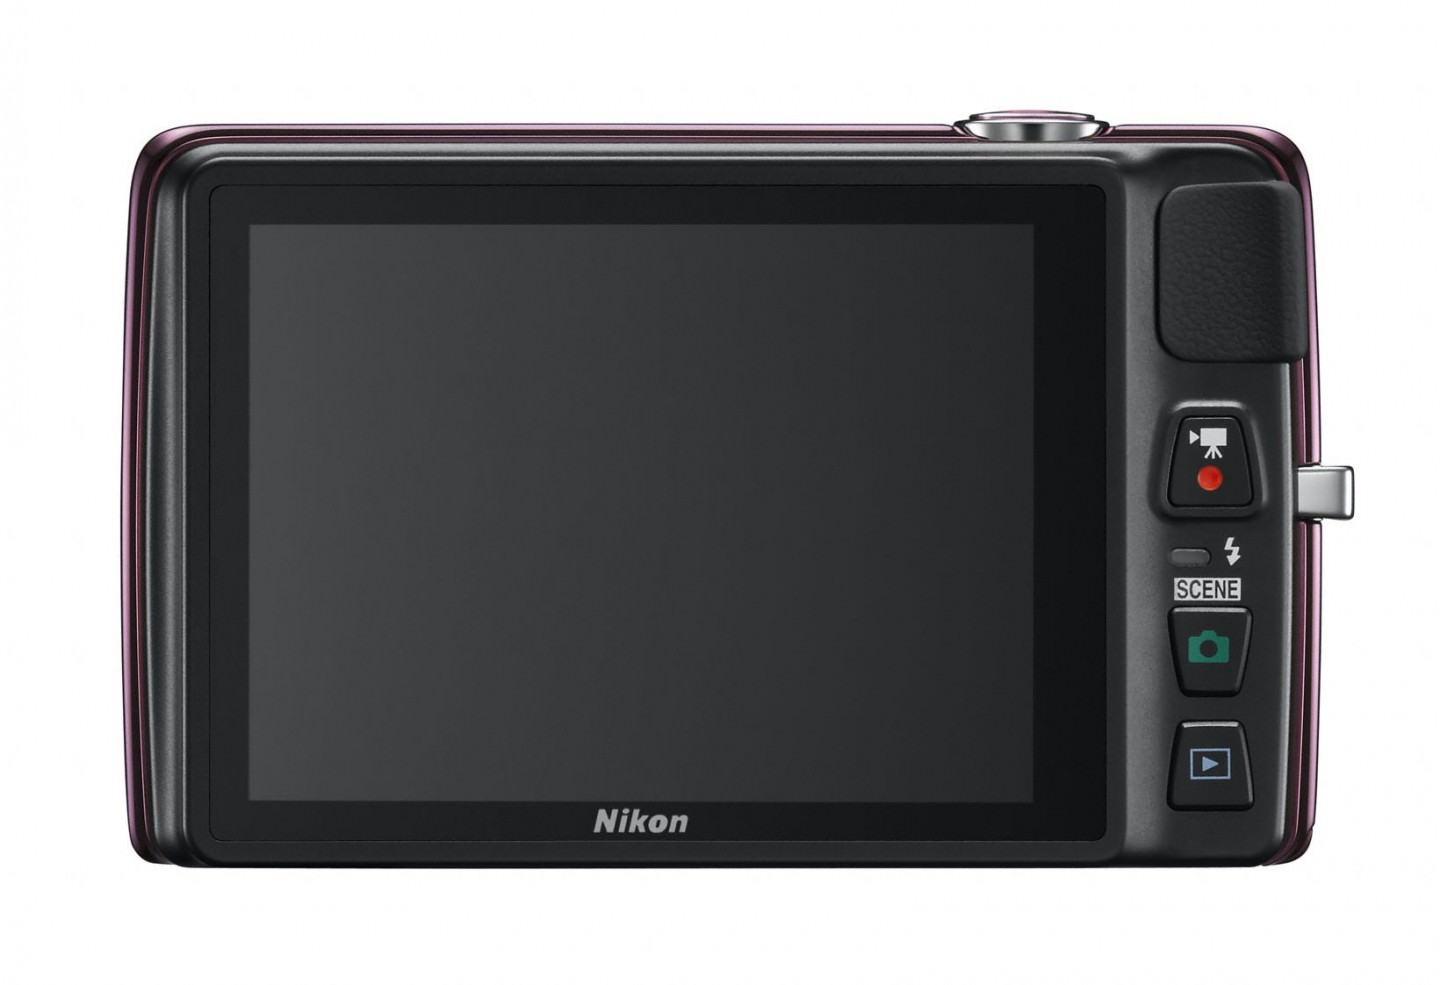 Nikon-Coolpix-S4300-Back.jpg